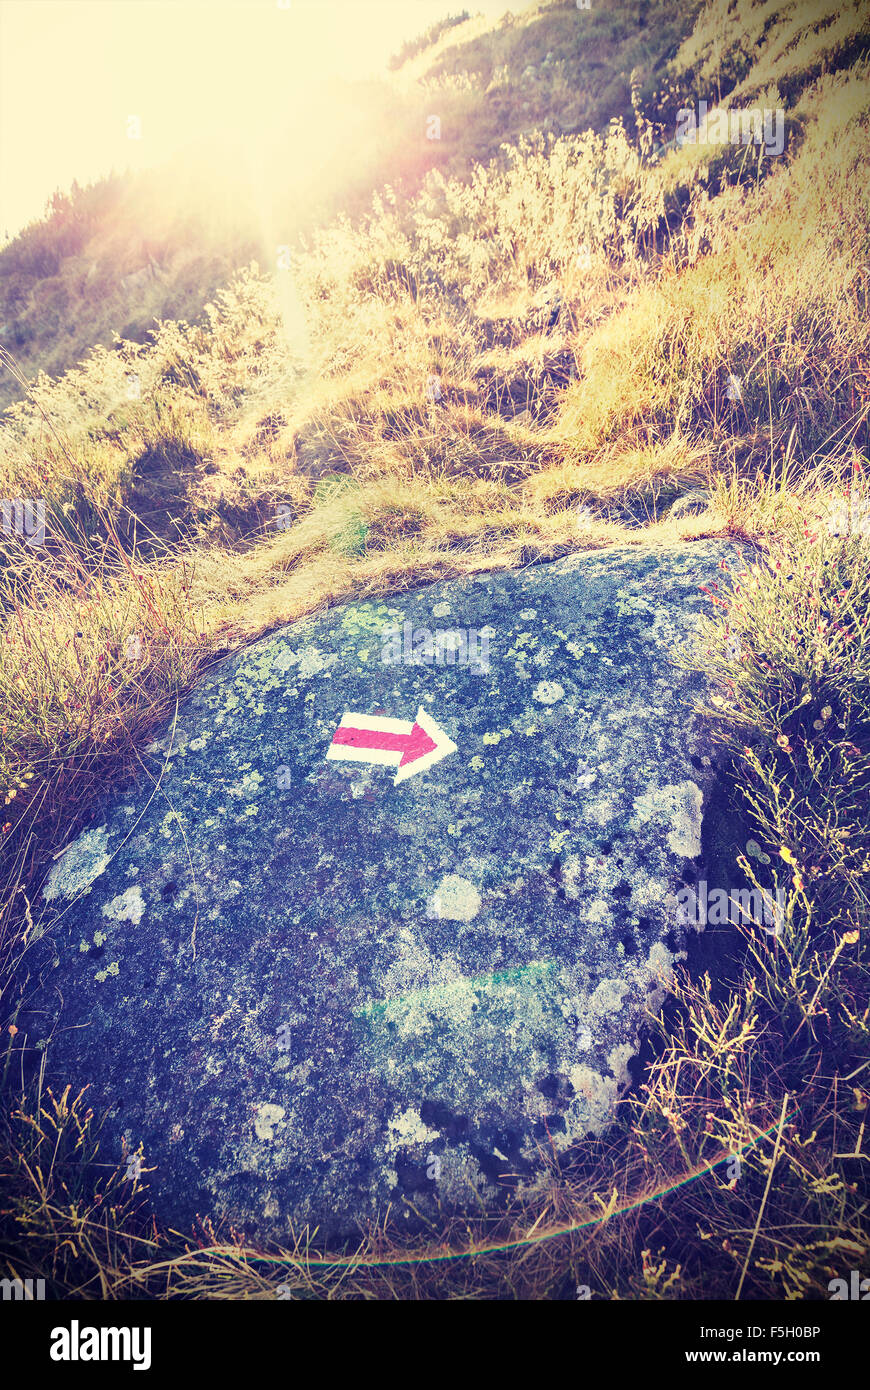 Retro stylized trail arrow sign against sunset with lens flare effect. - Stock Image